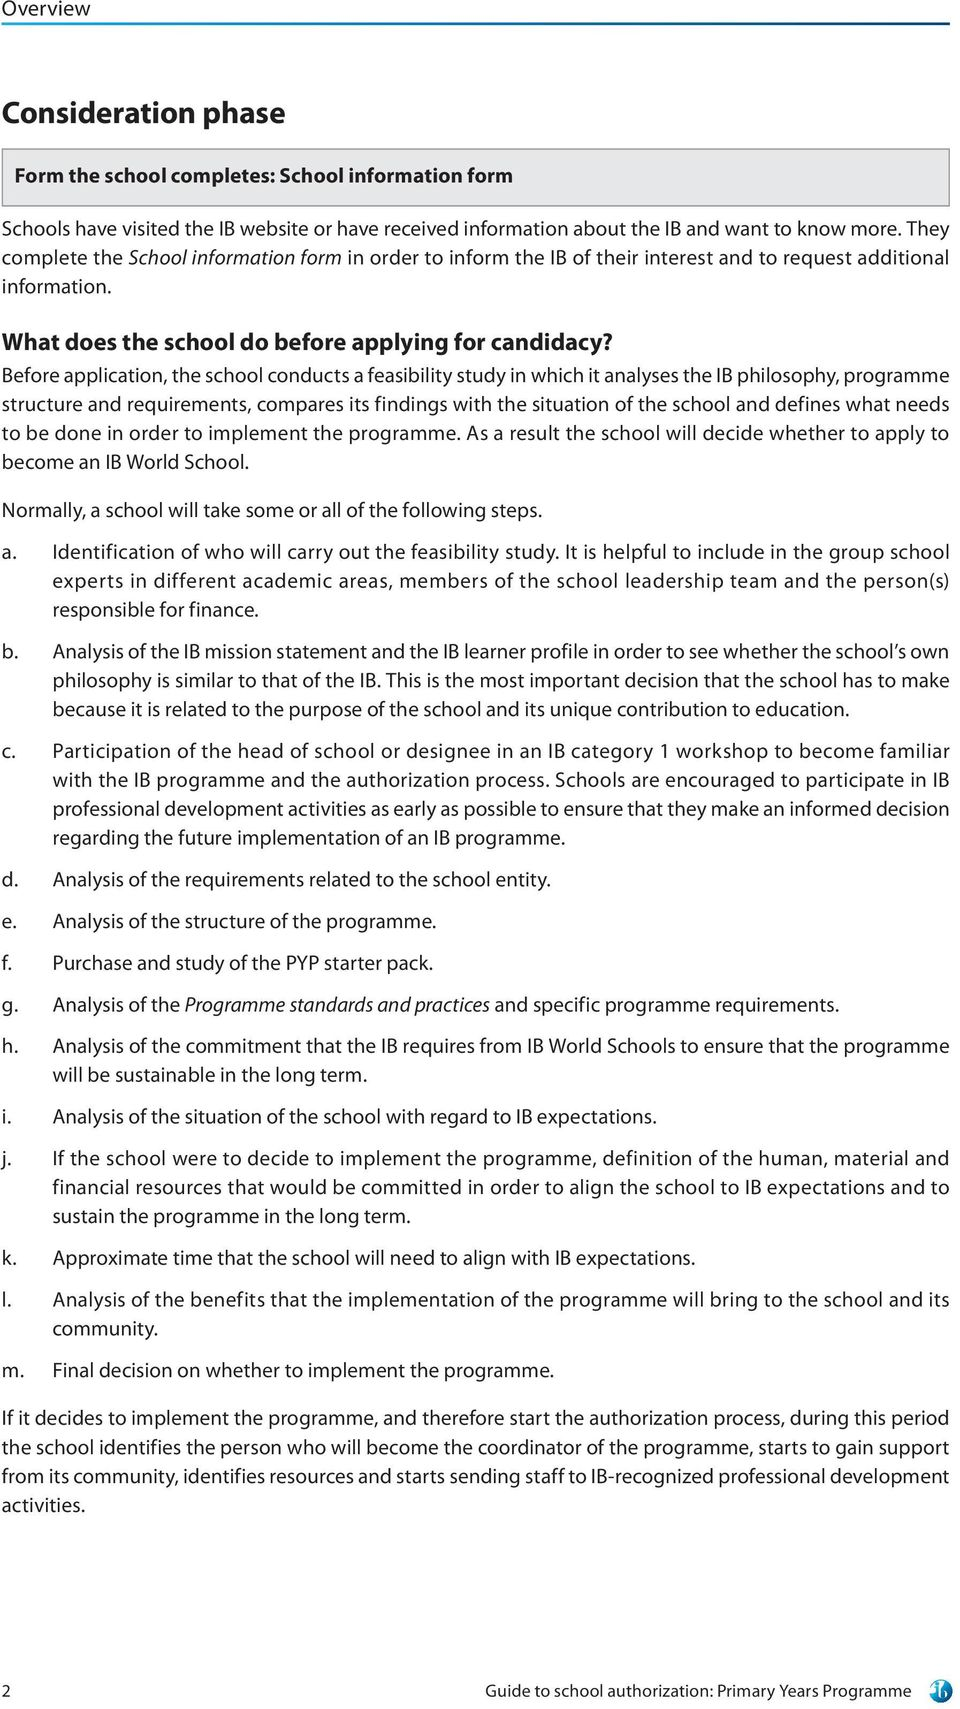 Before application, the school conducts a feasibility study in which it analyses the IB philosophy, programme structure and requirements, compares its findings with the situation of the school and